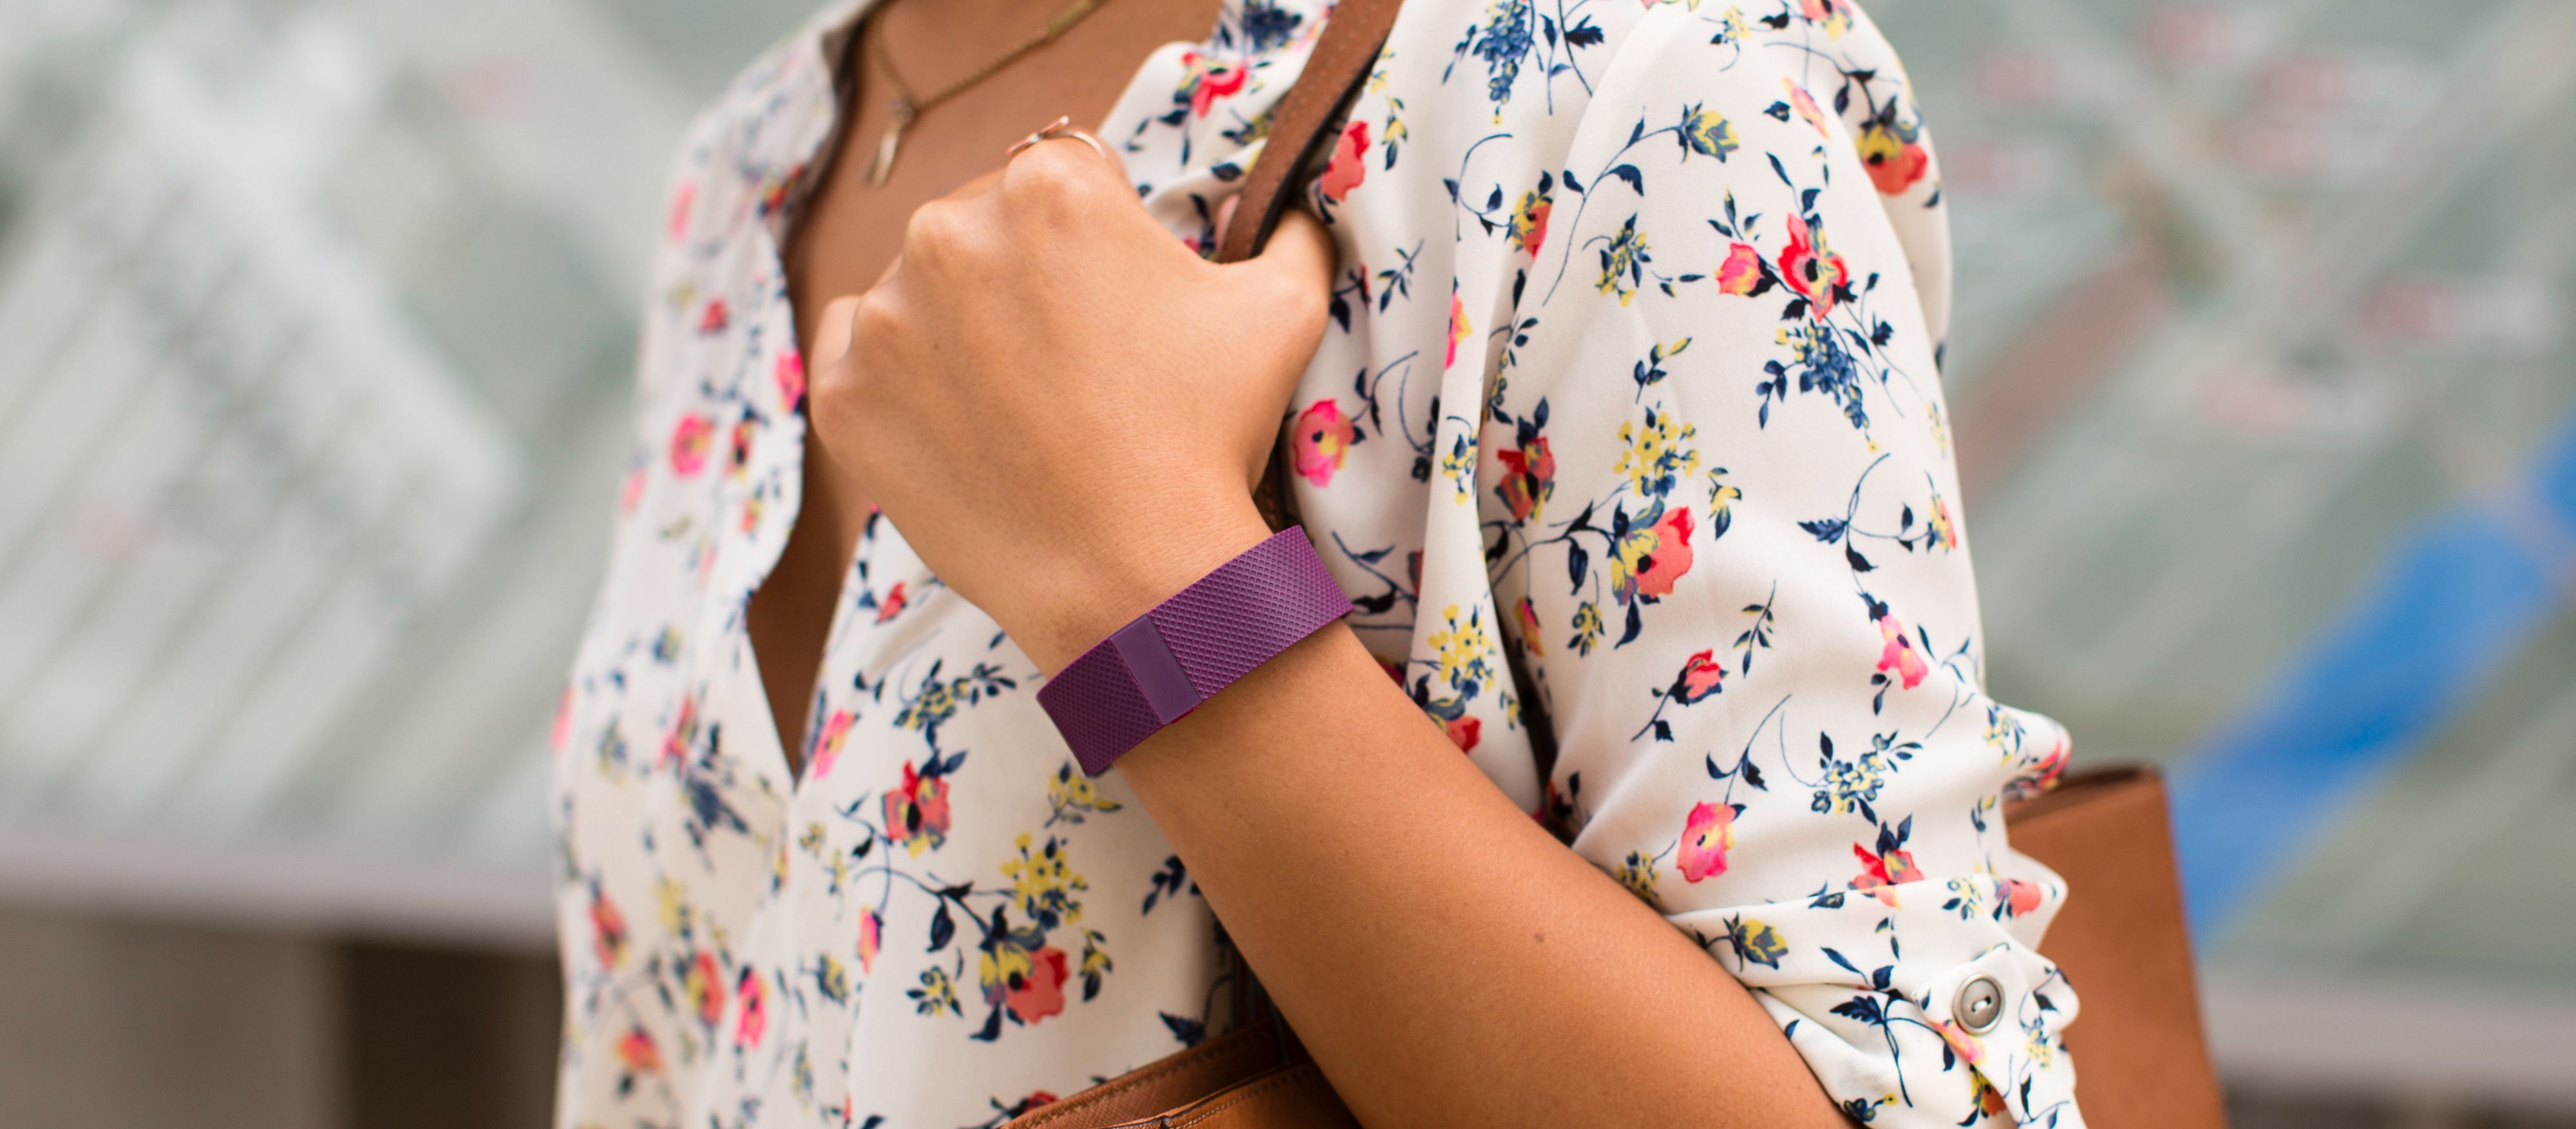 Fitbit Charge HR.Foto: Fitbit